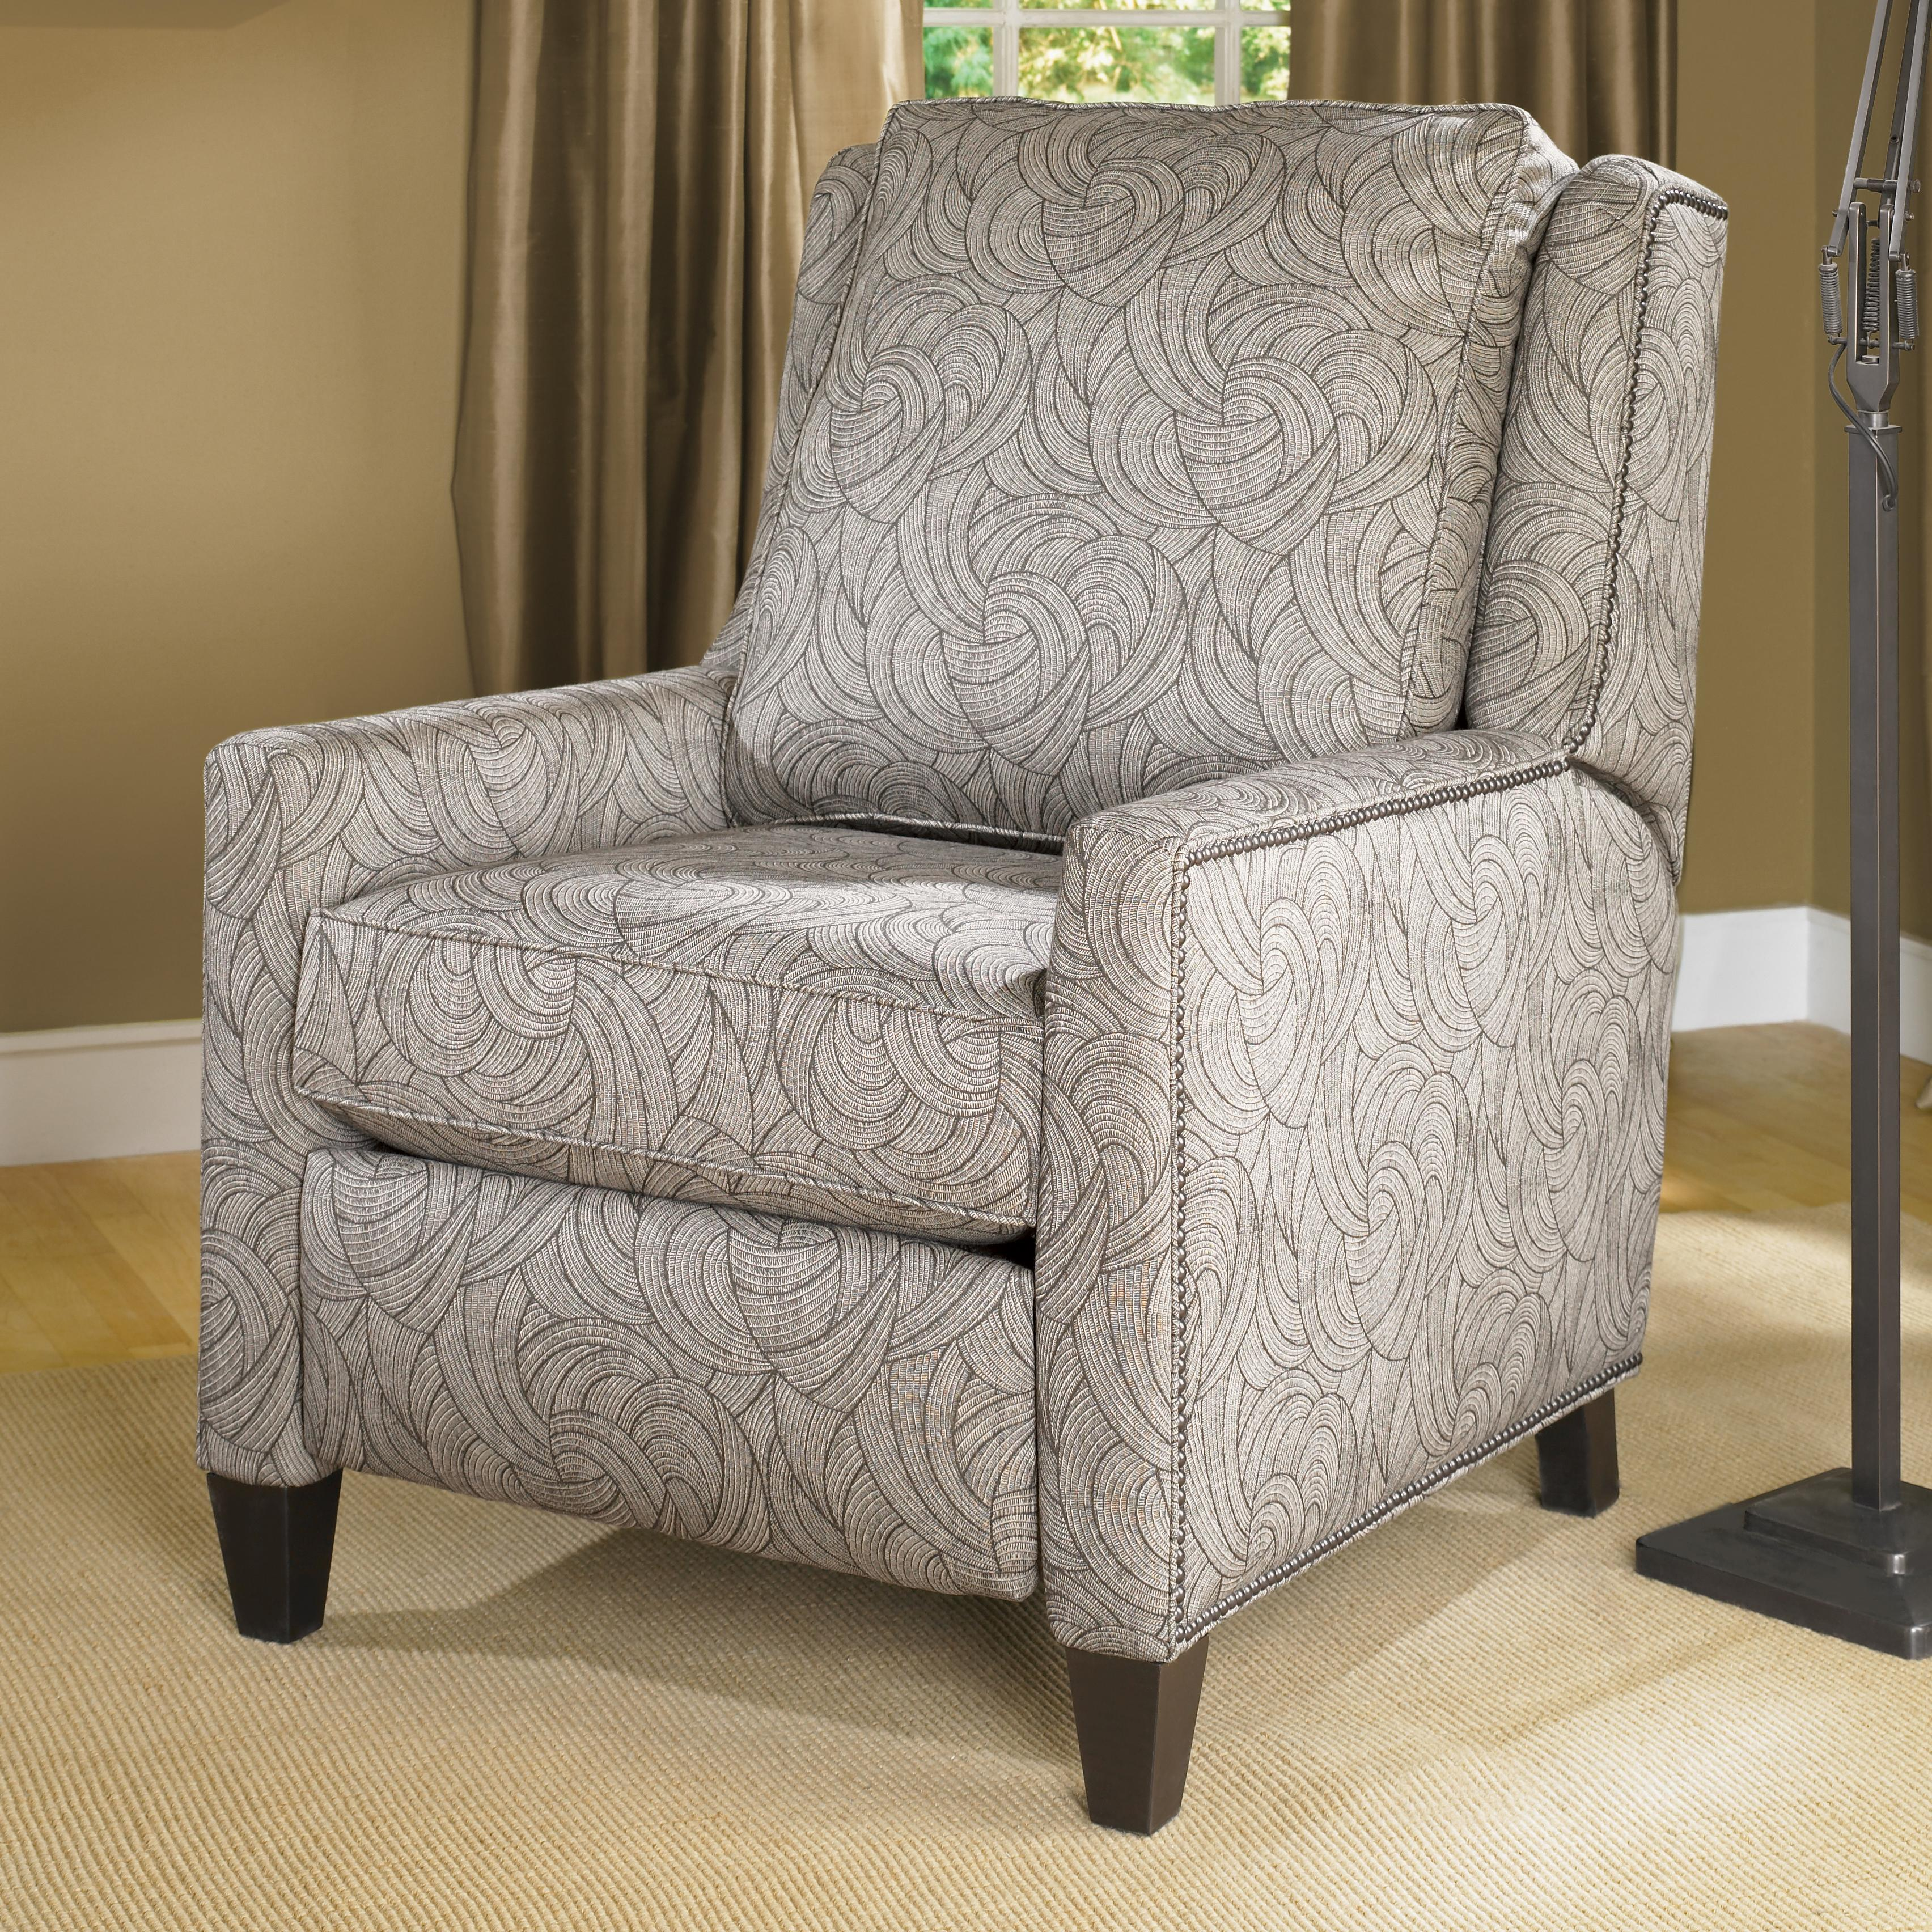 Transitional Power Reclining Chair With Nailhead Trim By